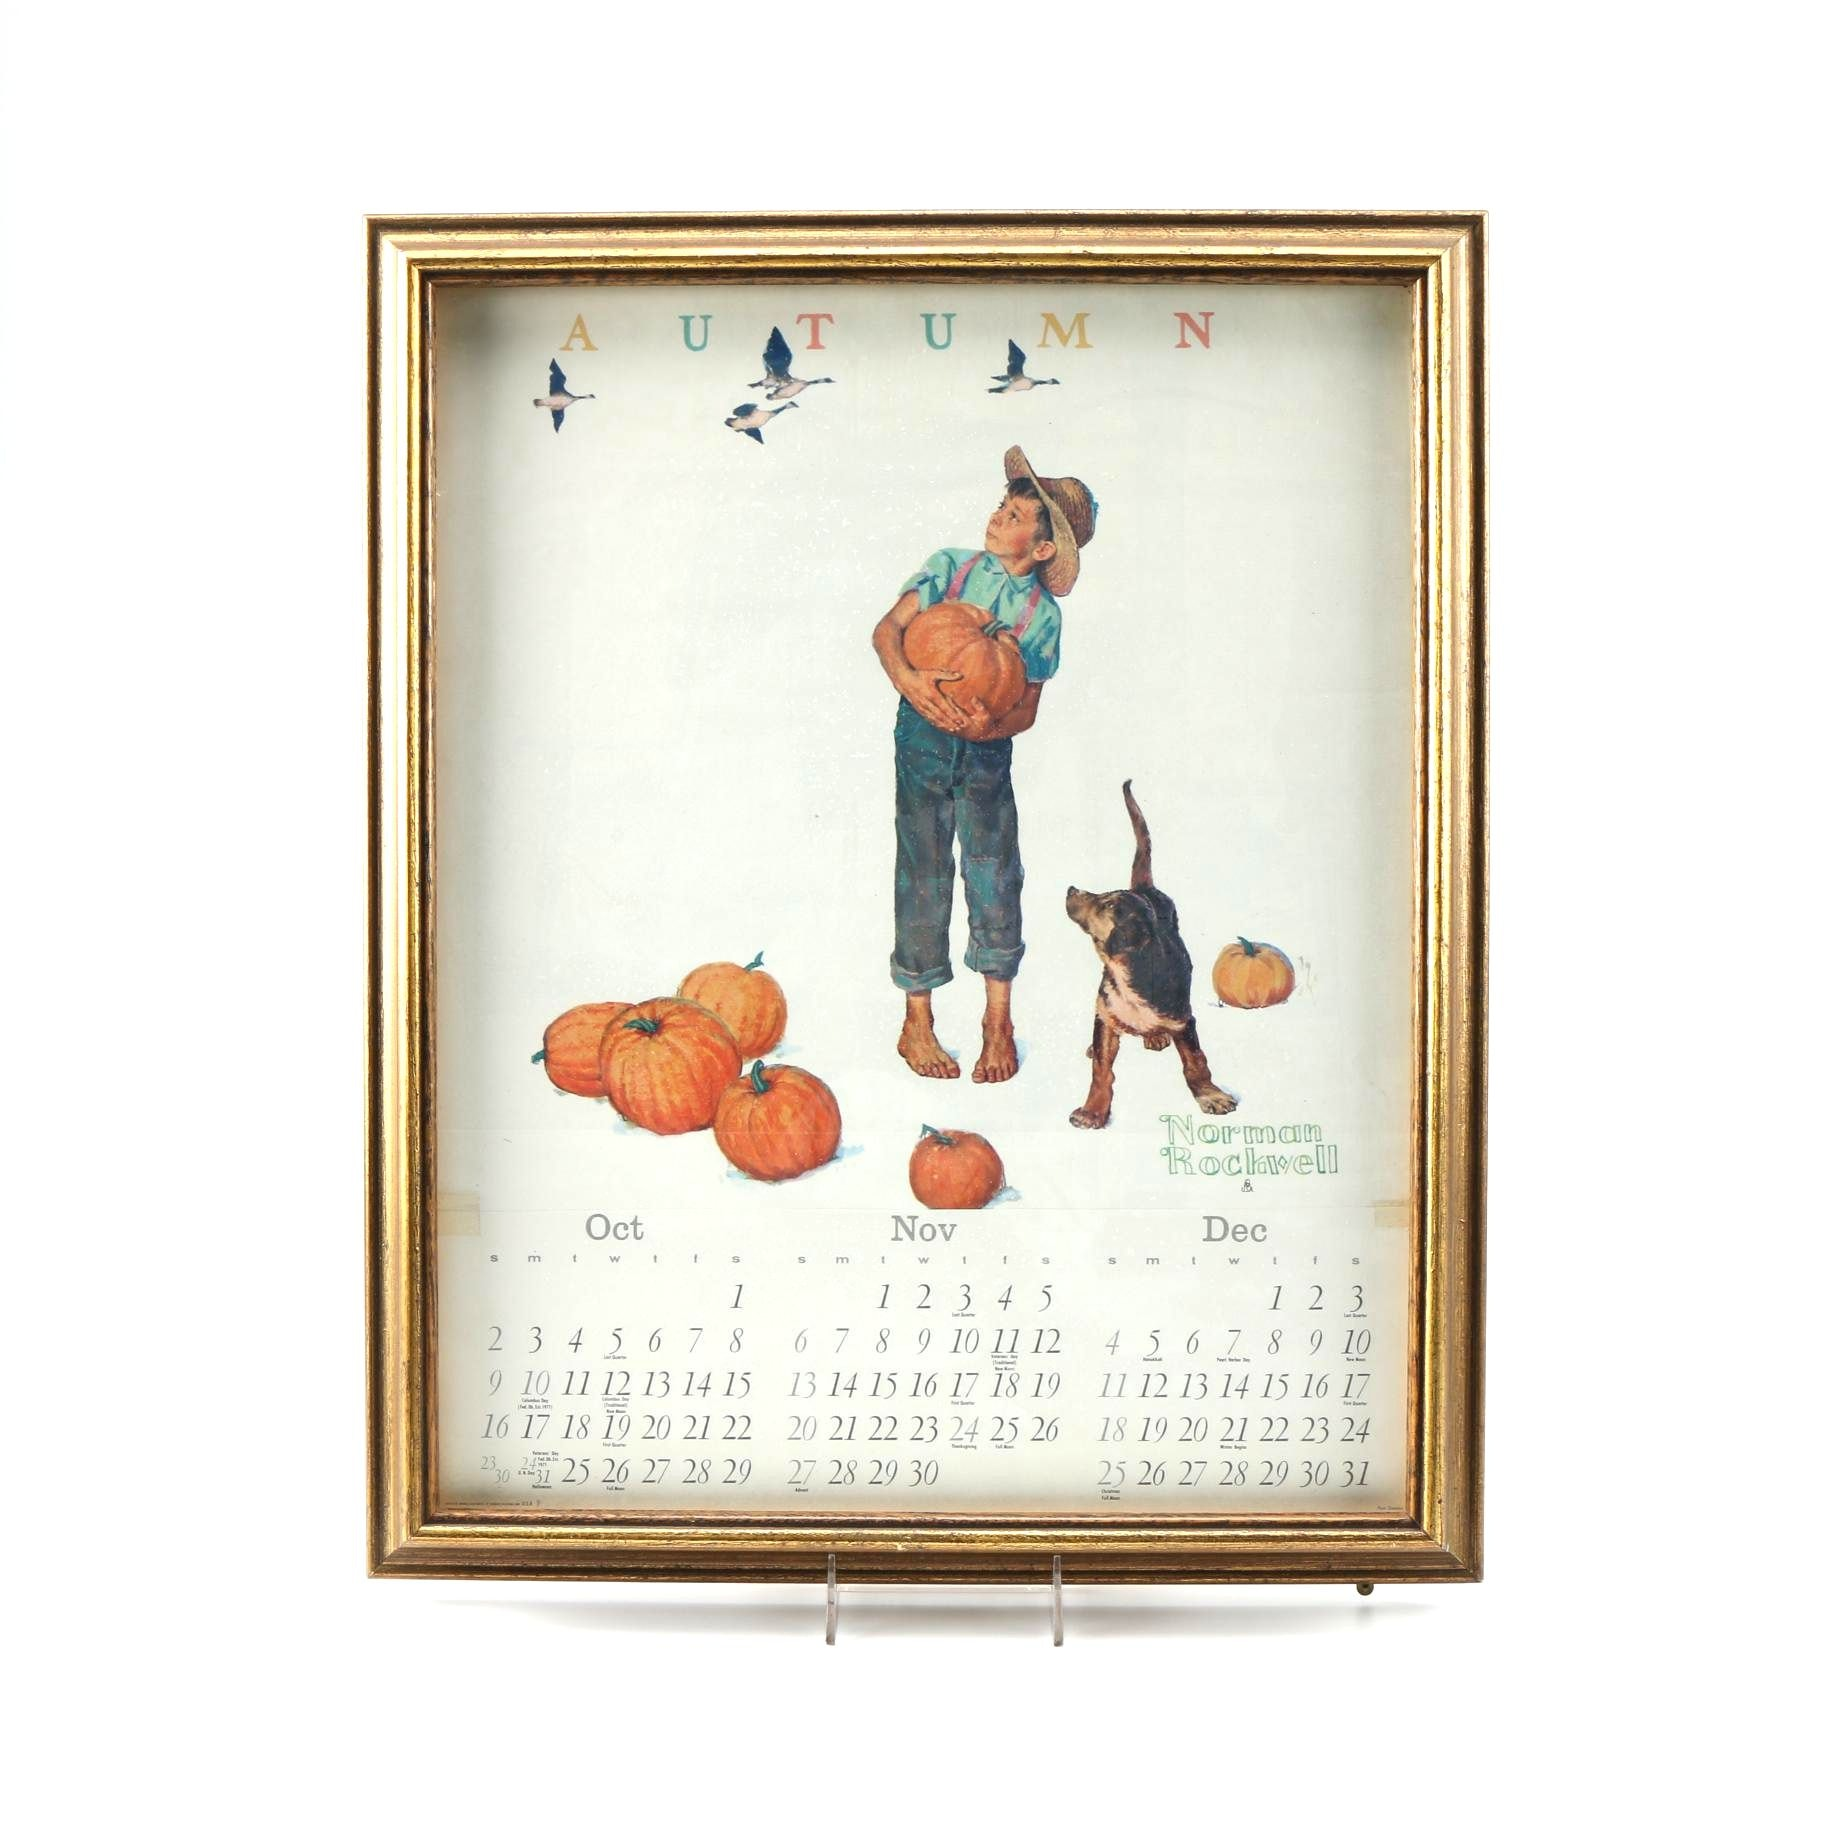 Framed Norman Rockwell Calendar Page